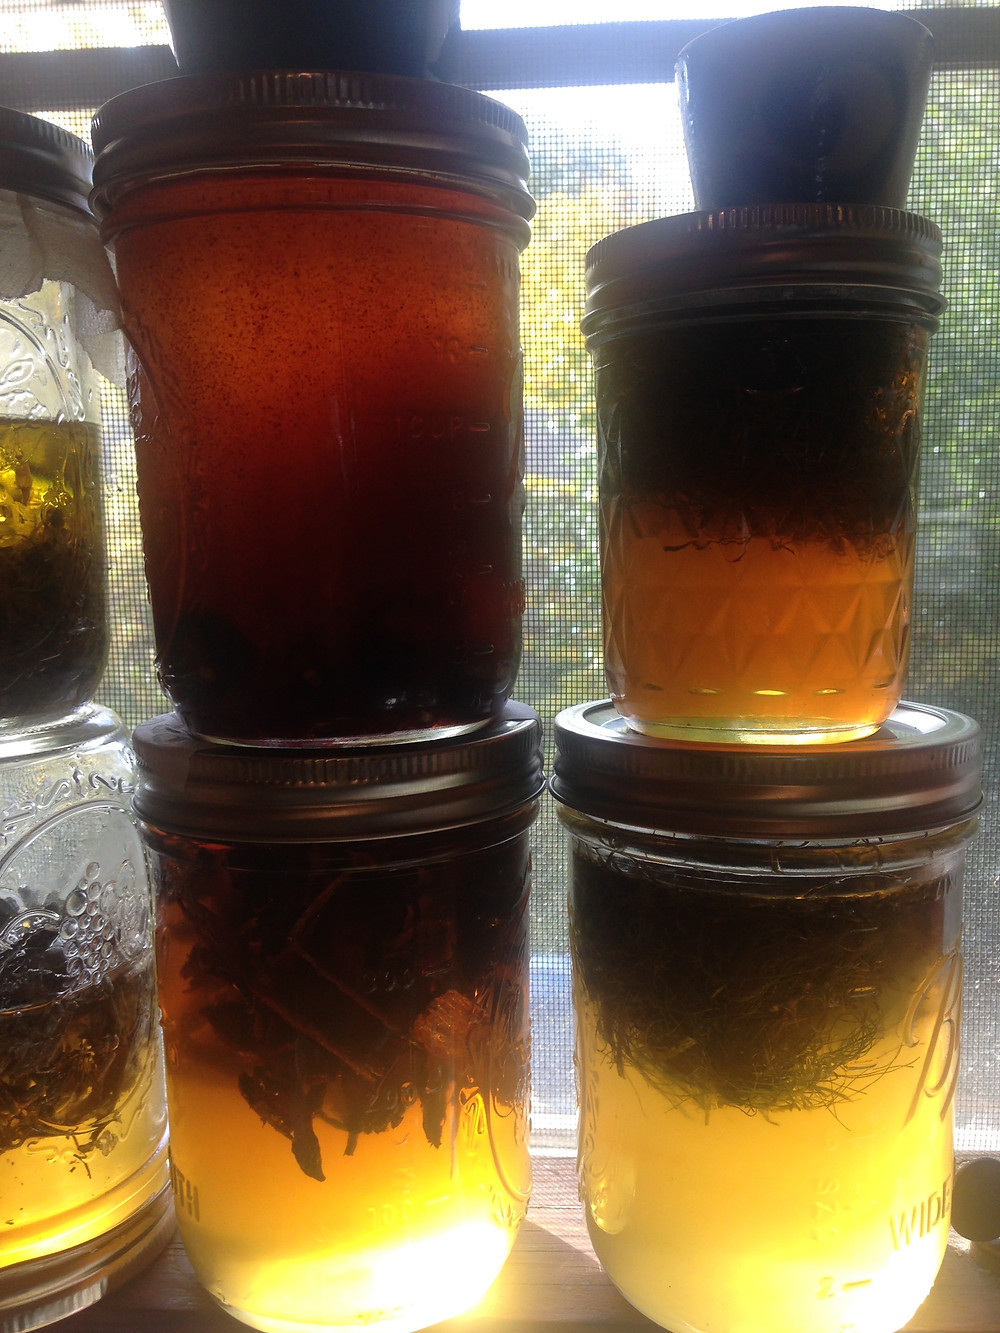 Slow solar infusions fill the window in my kitchen